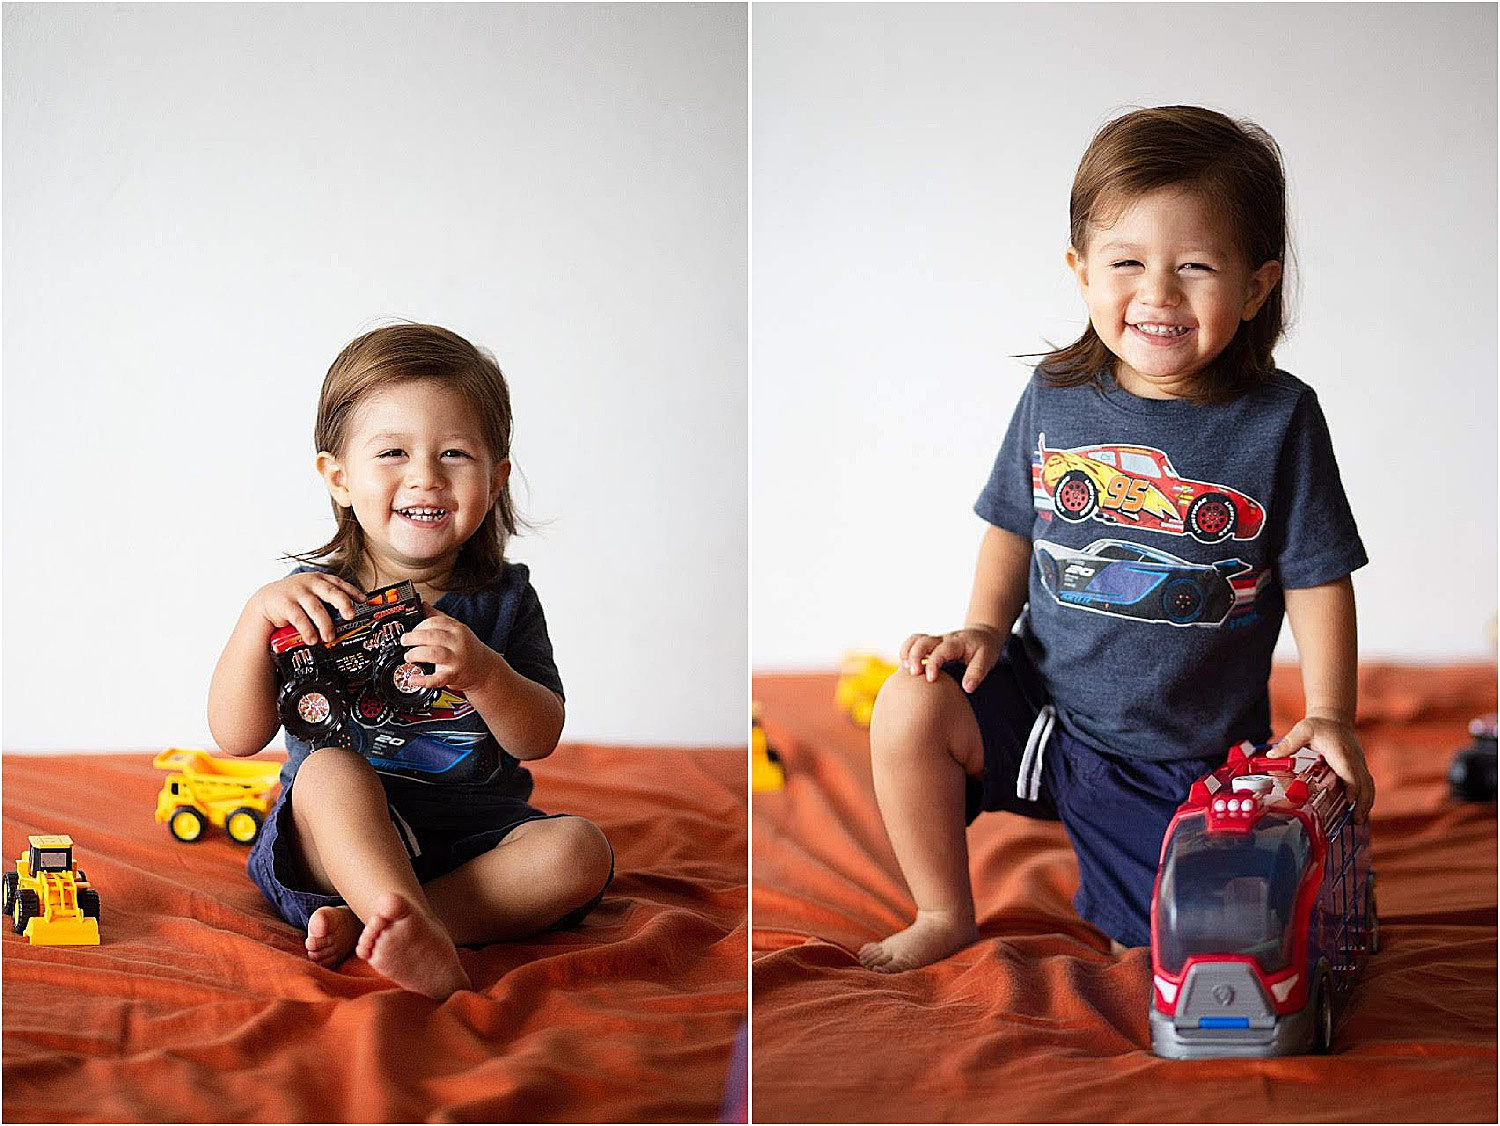 Tools-for-Photographing-Children-that-are-not-Gear-Related